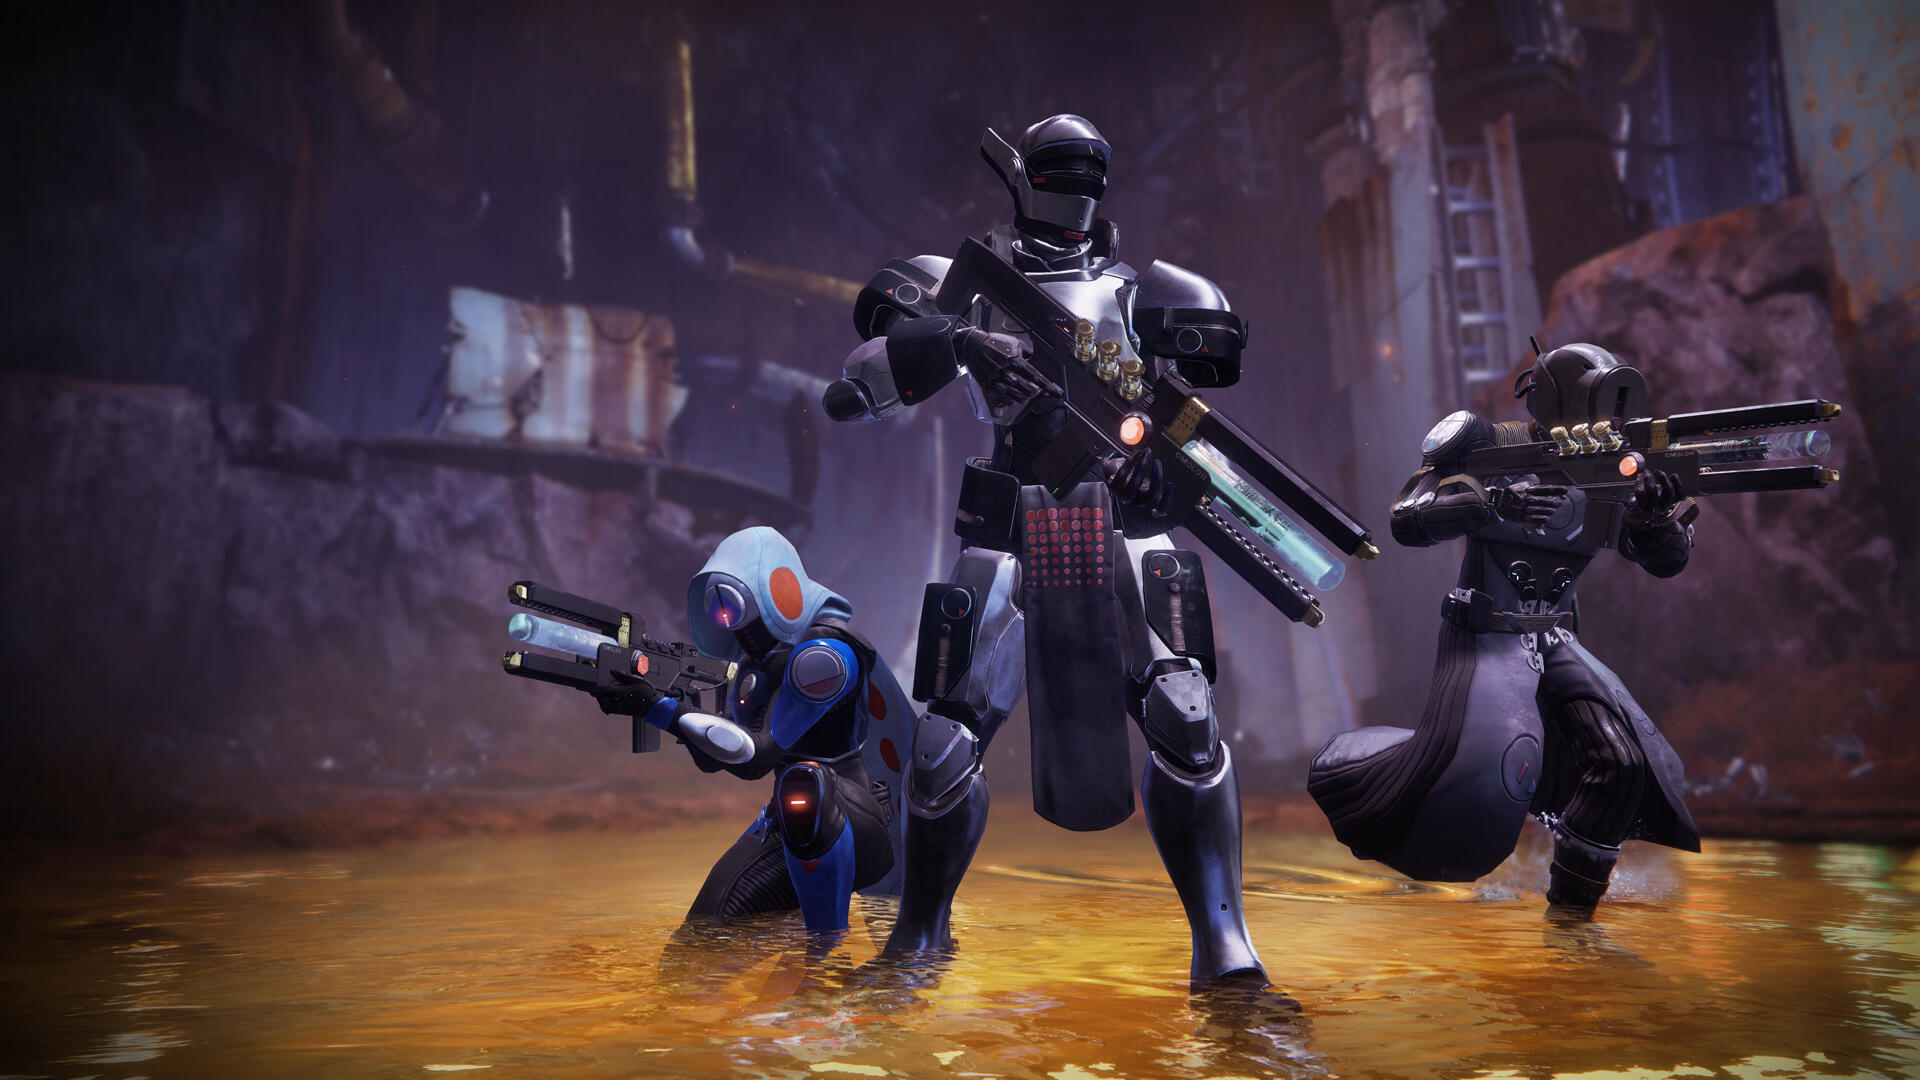 Destiny 2 Free-To-Play, Expansion Release Date Leak Ahead of Announcement